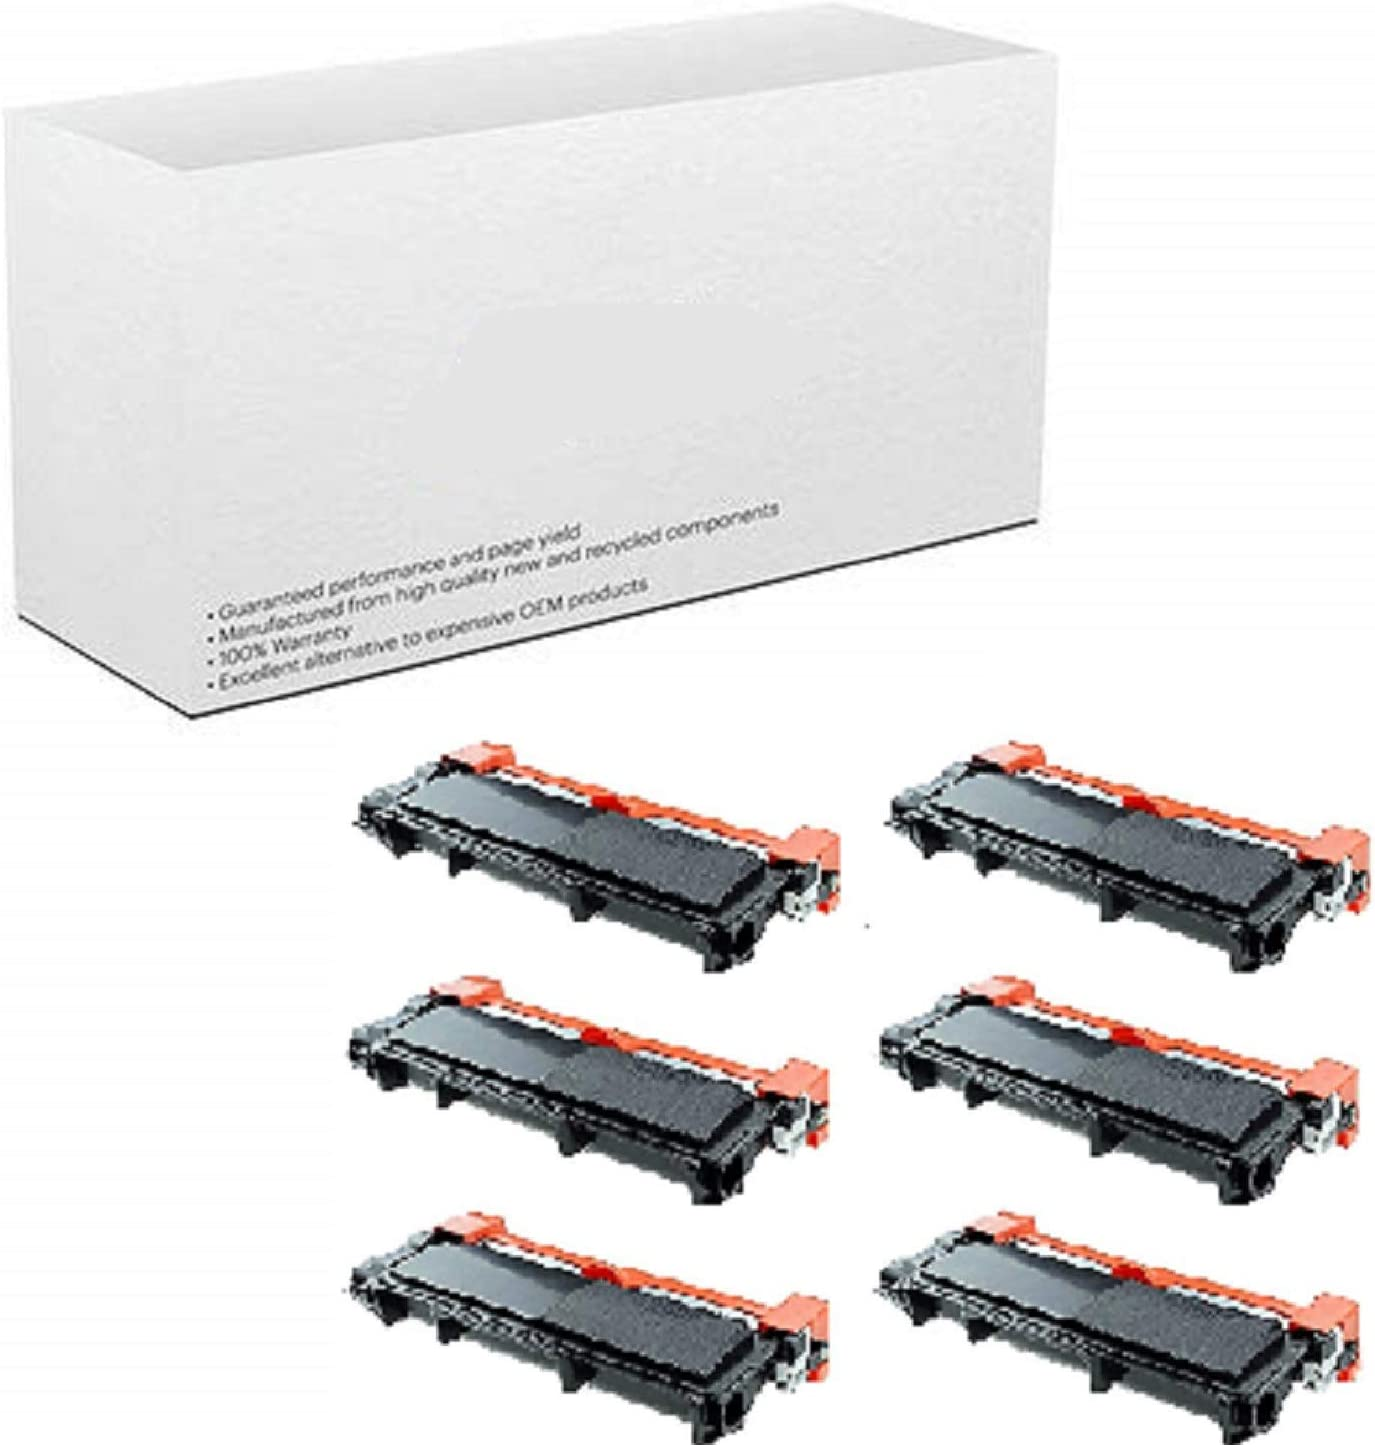 AM-Ink Compatible Toner Cartridge Replacement for Brother TN630 TB-630 TN660 TN-660 High Yield MFC-L2720DW MFC-L2740DW Printer 6-Pack